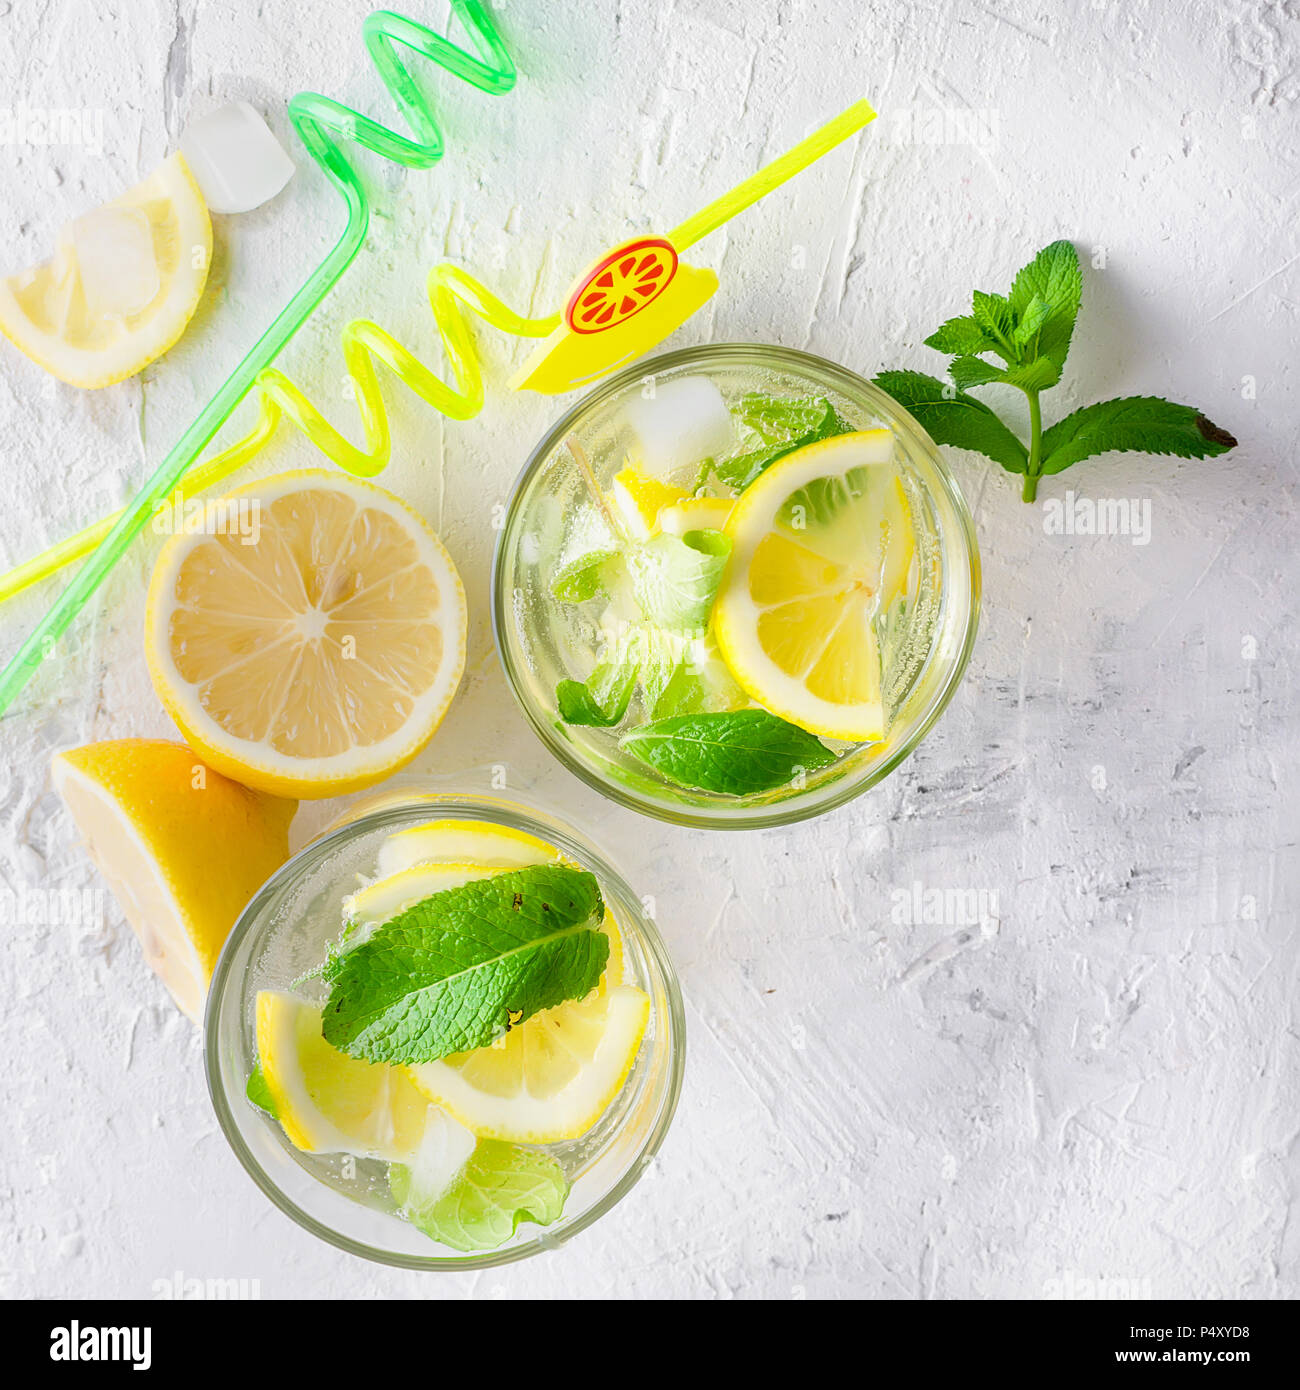 Fresh cold Mojito Cocktail with soda and lemon in glass and ingredients on a light background - Stock Image